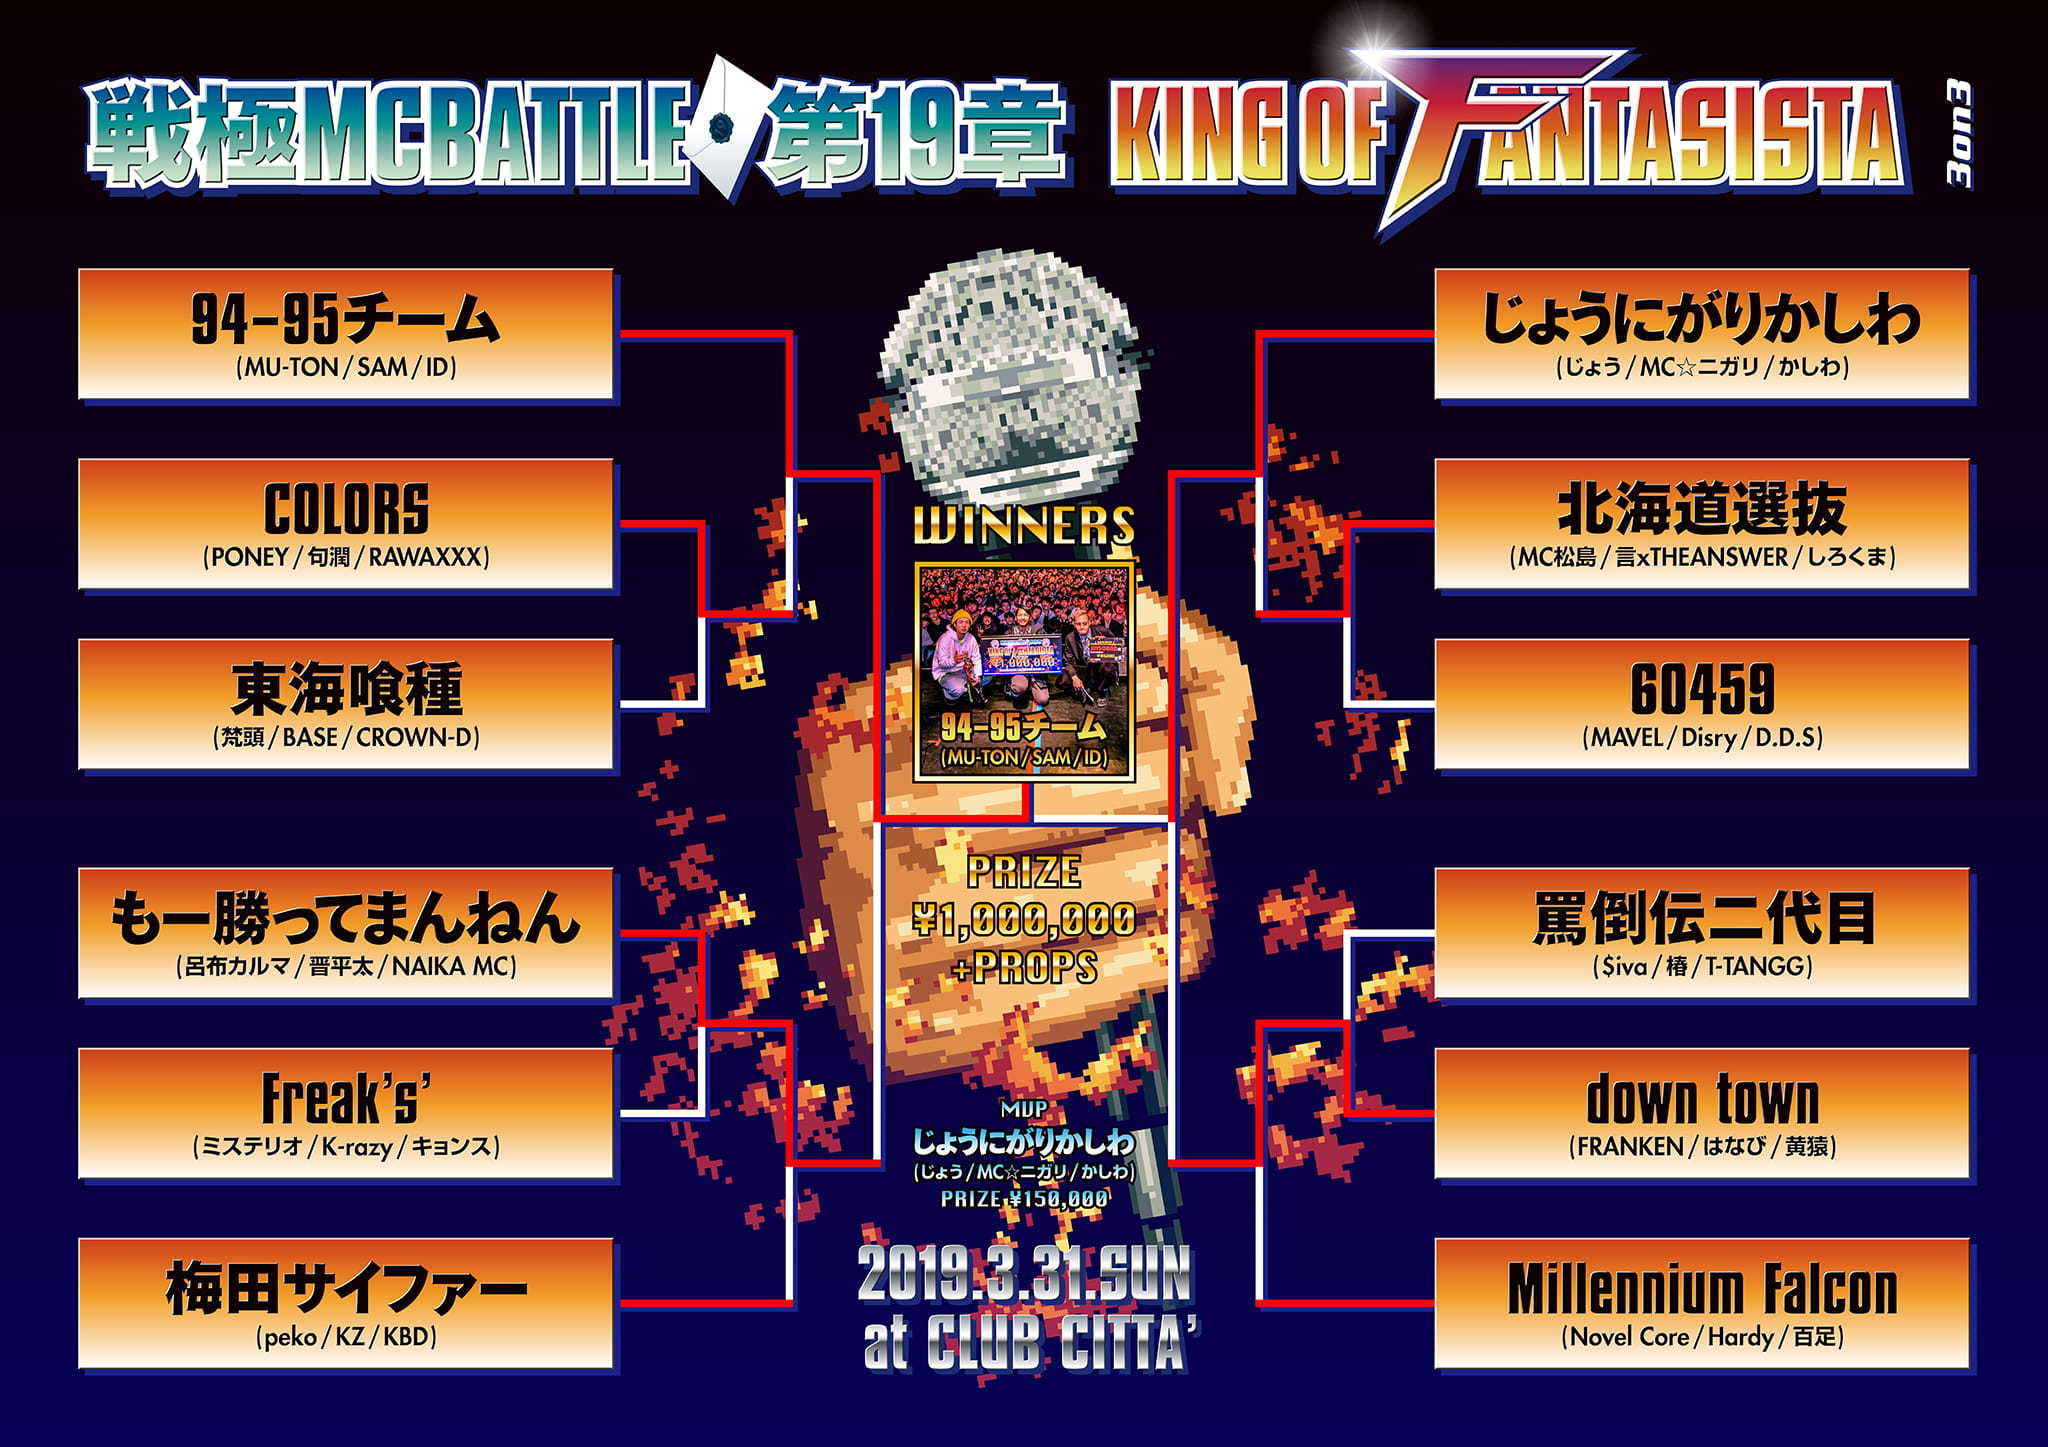 2019.3.31戦極MCBATTLE 第19章 -The King Of Fantsista 3on3 - 本戦優勝は・・_e0246863_15273901.jpg